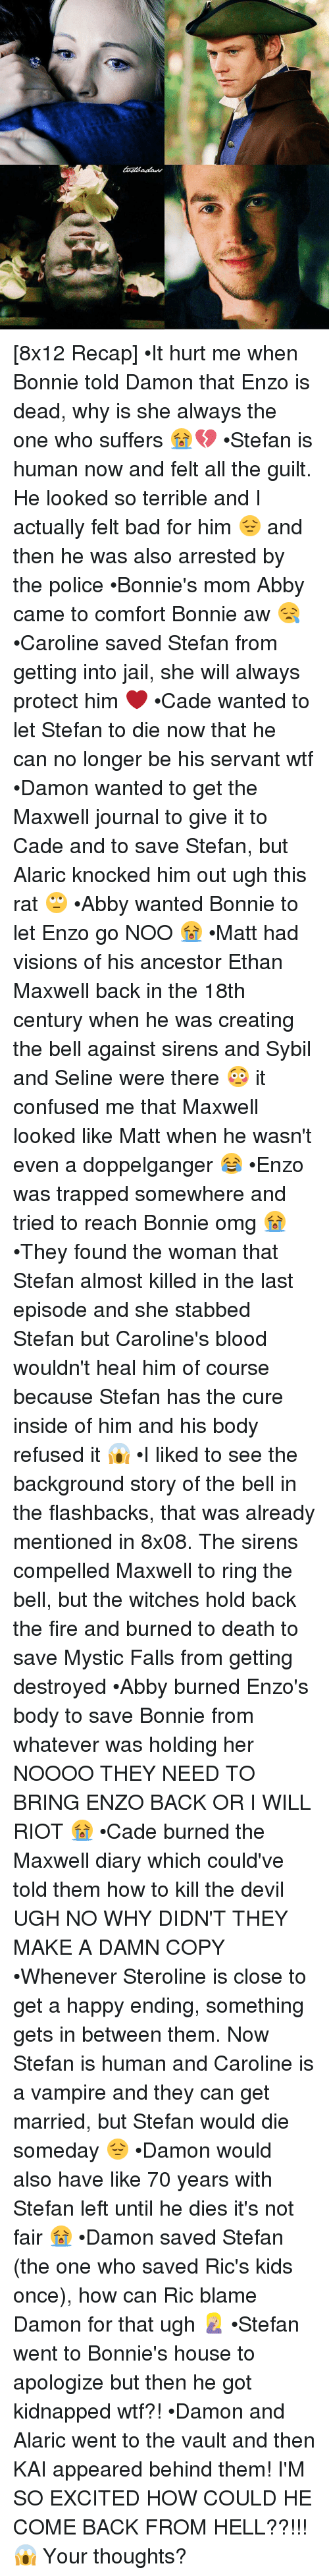 Doppelganger, Memes, and 🤖: [8x12 Recap] •It hurt me when Bonnie told Damon that Enzo is dead, why is she always the one who suffers 😭💔 •Stefan is human now and felt all the guilt. He looked so terrible and I actually felt bad for him 😔 and then he was also arrested by the police •Bonnie's mom Abby came to comfort Bonnie aw 😪 •Caroline saved Stefan from getting into jail, she will always protect him ❤ •Cade wanted to let Stefan to die now that he can no longer be his servant wtf •Damon wanted to get the Maxwell journal to give it to Cade and to save Stefan, but Alaric knocked him out ugh this rat 🙄 •Abby wanted Bonnie to let Enzo go NOO 😭 •Matt had visions of his ancestor Ethan Maxwell back in the 18th century when he was creating the bell against sirens and Sybil and Seline were there 😳 it confused me that Maxwell looked like Matt when he wasn't even a doppelganger 😂 •Enzo was trapped somewhere and tried to reach Bonnie omg 😭 •They found the woman that Stefan almost killed in the last episode and she stabbed Stefan but Caroline's blood wouldn't heal him of course because Stefan has the cure inside of him and his body refused it 😱 •I liked to see the background story of the bell in the flashbacks, that was already mentioned in 8x08. The sirens compelled Maxwell to ring the bell, but the witches hold back the fire and burned to death to save Mystic Falls from getting destroyed •Abby burned Enzo's body to save Bonnie from whatever was holding her NOOOO THEY NEED TO BRING ENZO BACK OR I WILL RIOT 😭 •Cade burned the Maxwell diary which could've told them how to kill the devil UGH NO WHY DIDN'T THEY MAKE A DAMN COPY •Whenever Steroline is close to get a happy ending, something gets in between them. Now Stefan is human and Caroline is a vampire and they can get married, but Stefan would die someday 😔 •Damon would also have like 70 years with Stefan left until he dies it's not fair 😭 •Damon saved Stefan (the one who saved Ric's kids once), how can Ric blame Damon for that ugh 🤦🏼‍♀️ •Stefan went to Bonnie's house to apologize but then he got kidnapped wtf?! •Damon and Alaric went to the vault and then KAI appeared behind them! I'M SO EXCITED HOW COULD HE COME BACK FROM HELL??!!! 😱 Your thoughts?